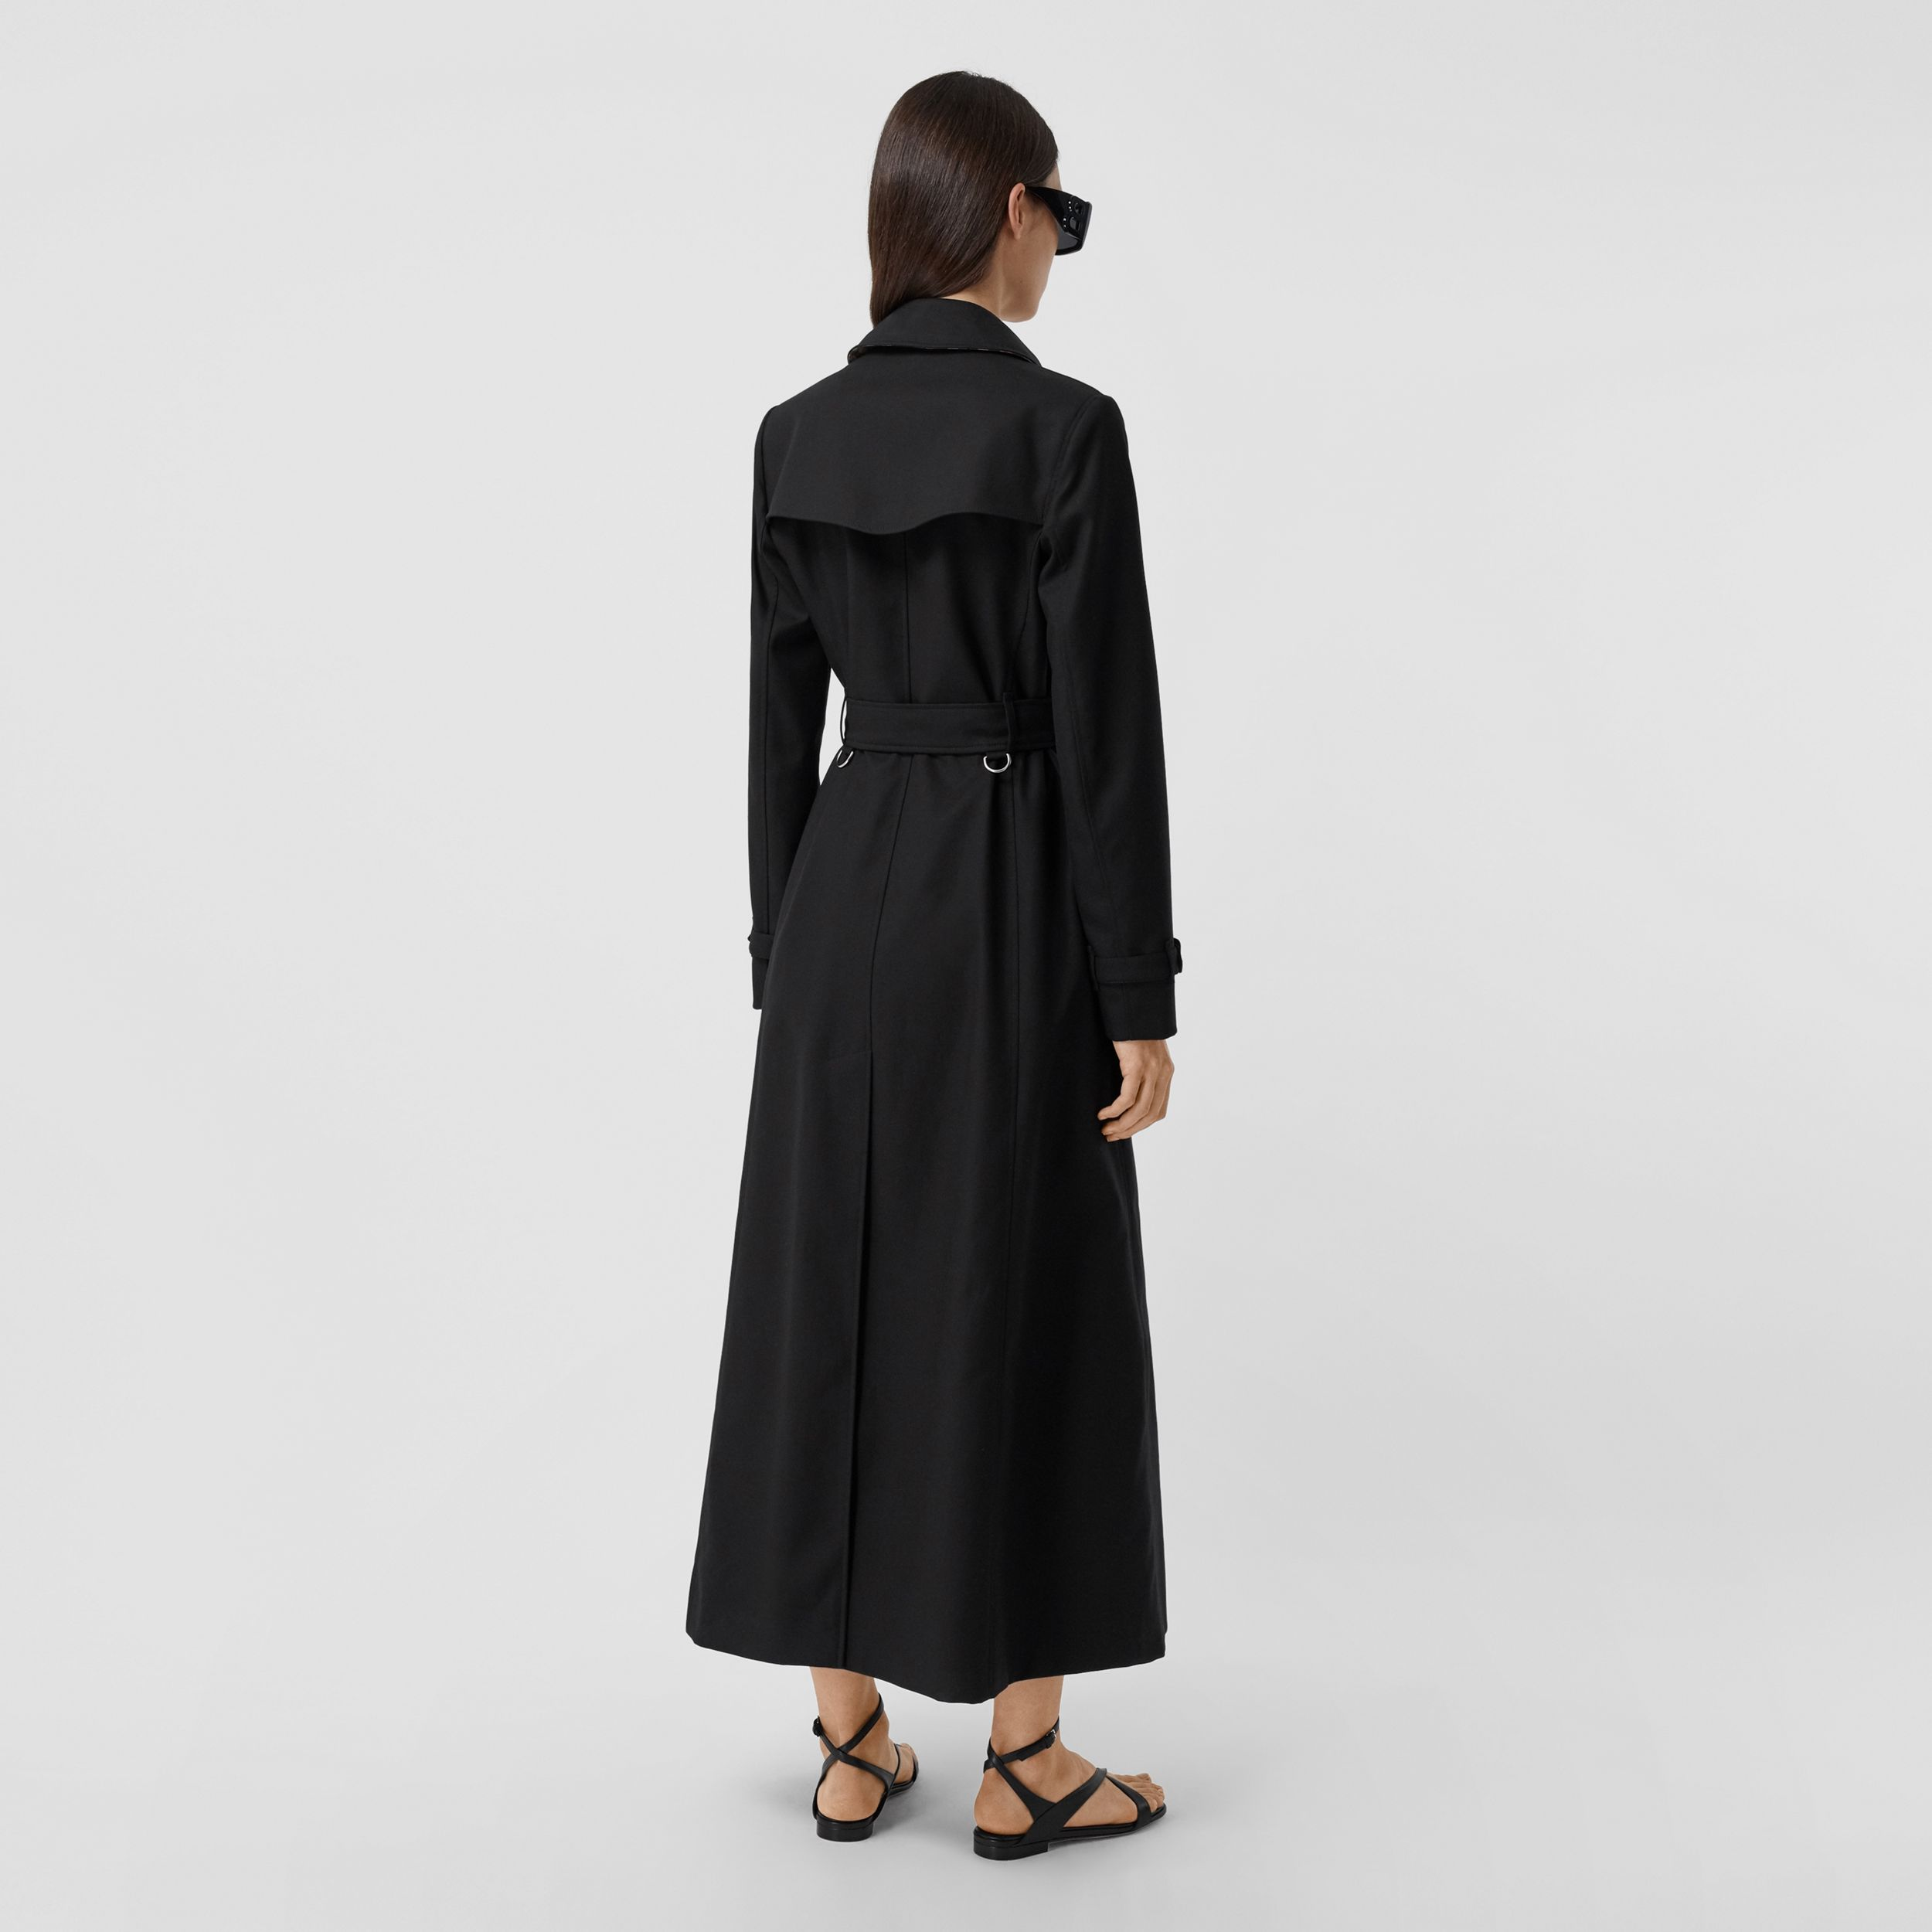 Pocket Detail Cotton Gabardine Trench Coat in Black - Women | Burberry - 3